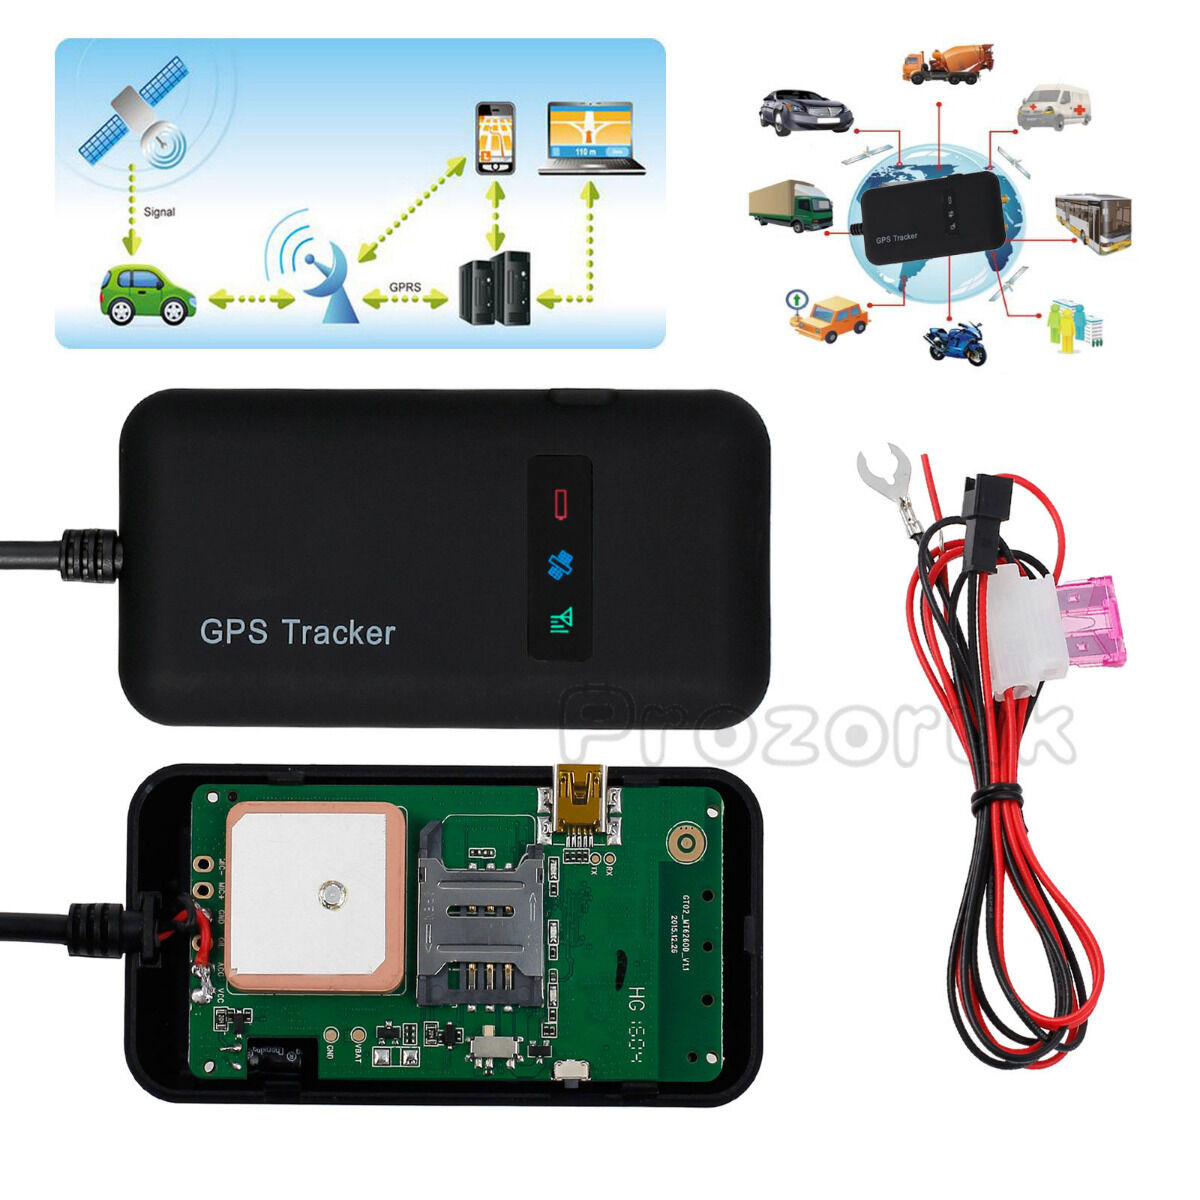 mini realtime gps car tracker locator gprs gsm tracking. Black Bedroom Furniture Sets. Home Design Ideas